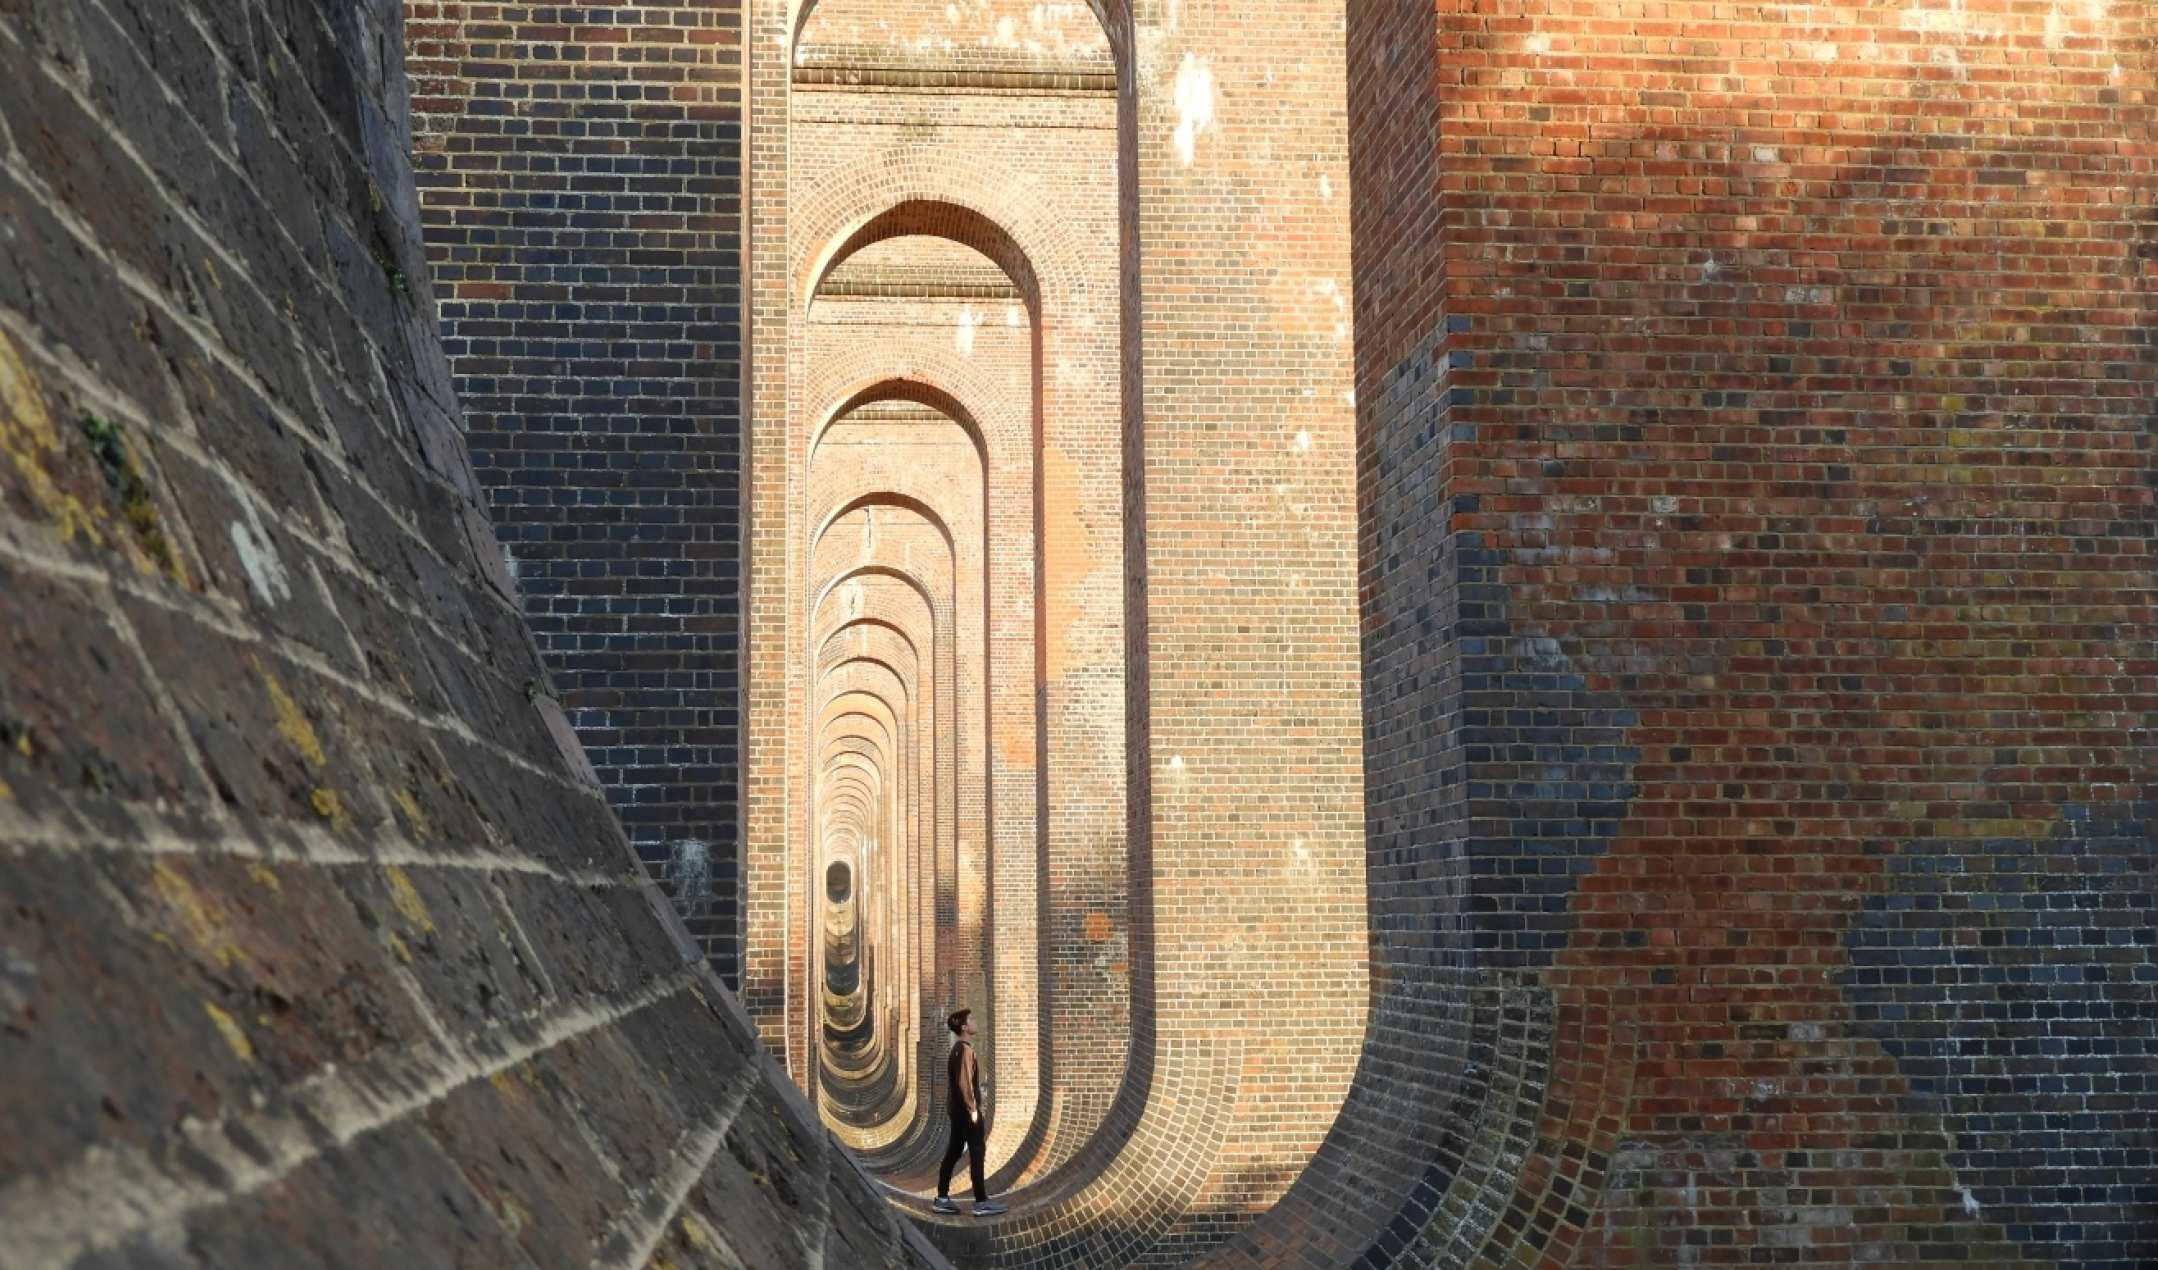 """Mid-September at Ouse Valley Viaduct"" by Akim Beckett"